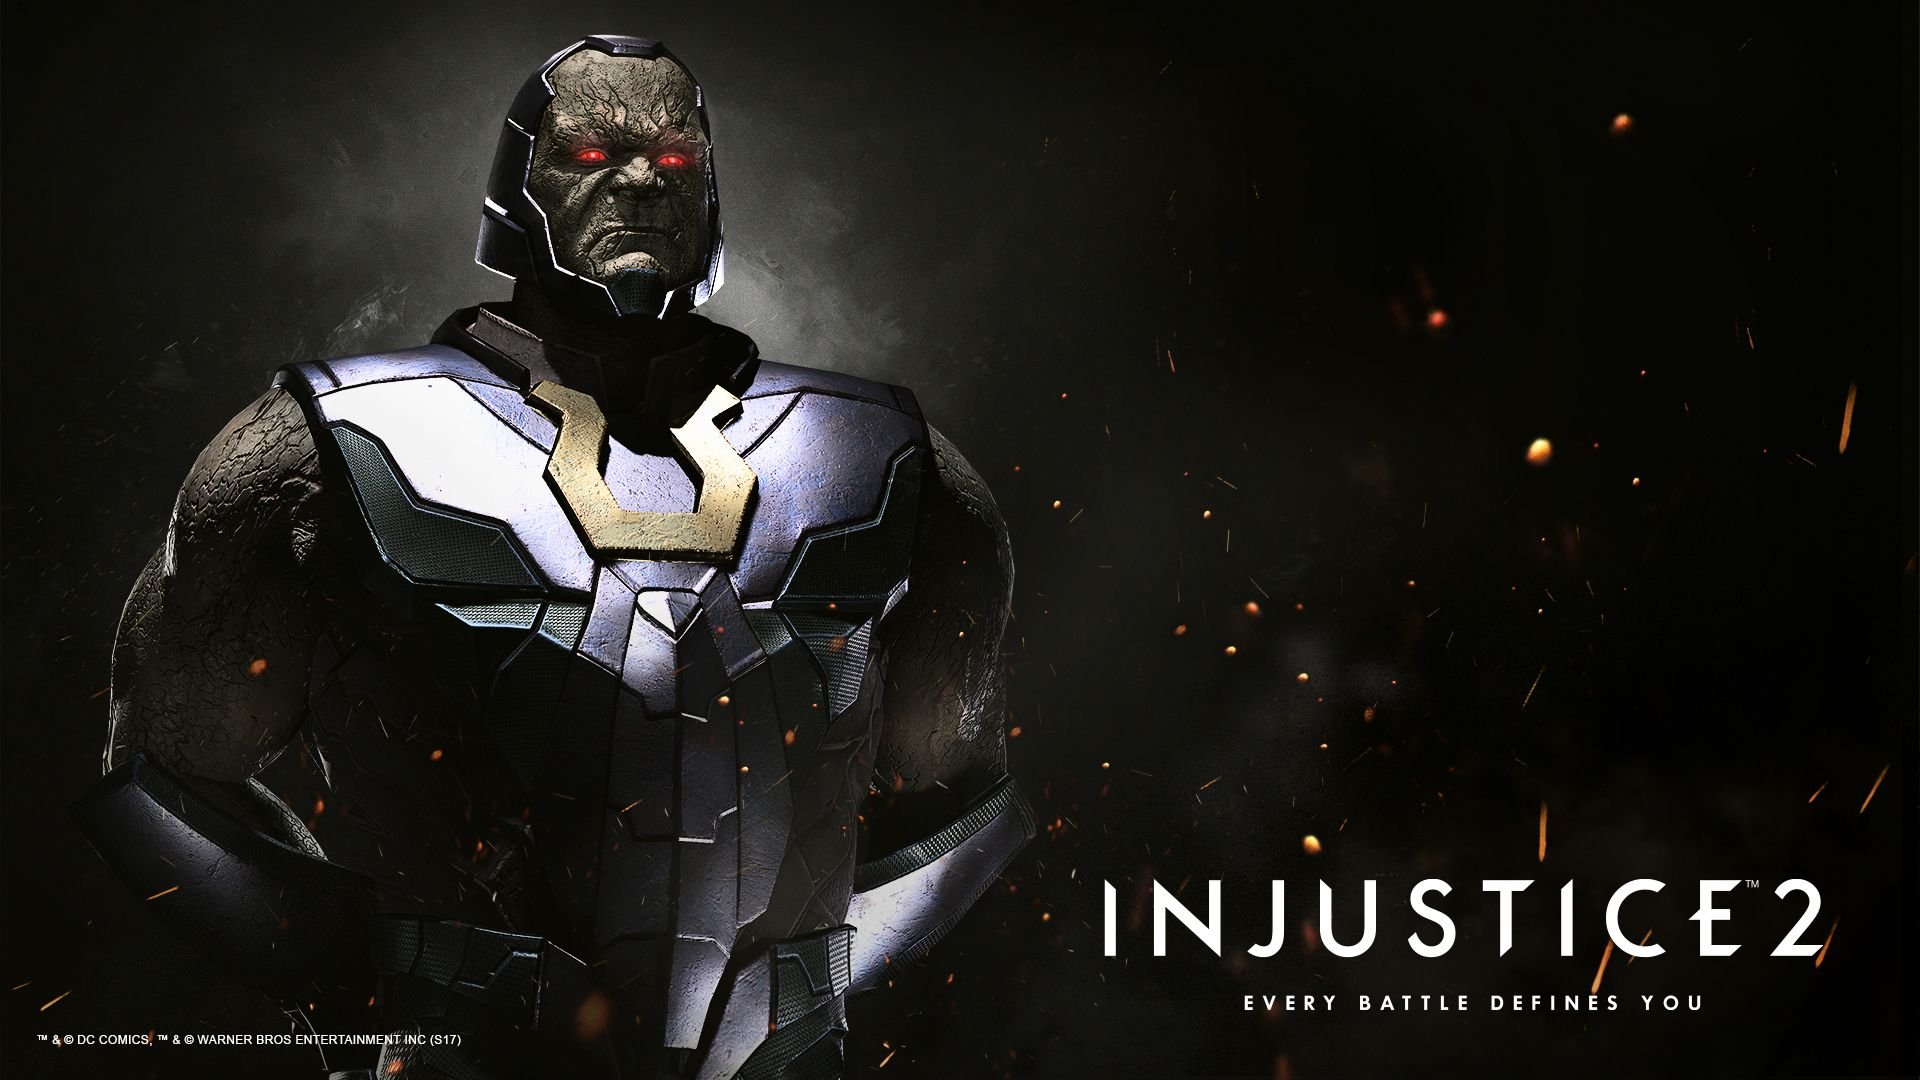 Uxas (Injustice)